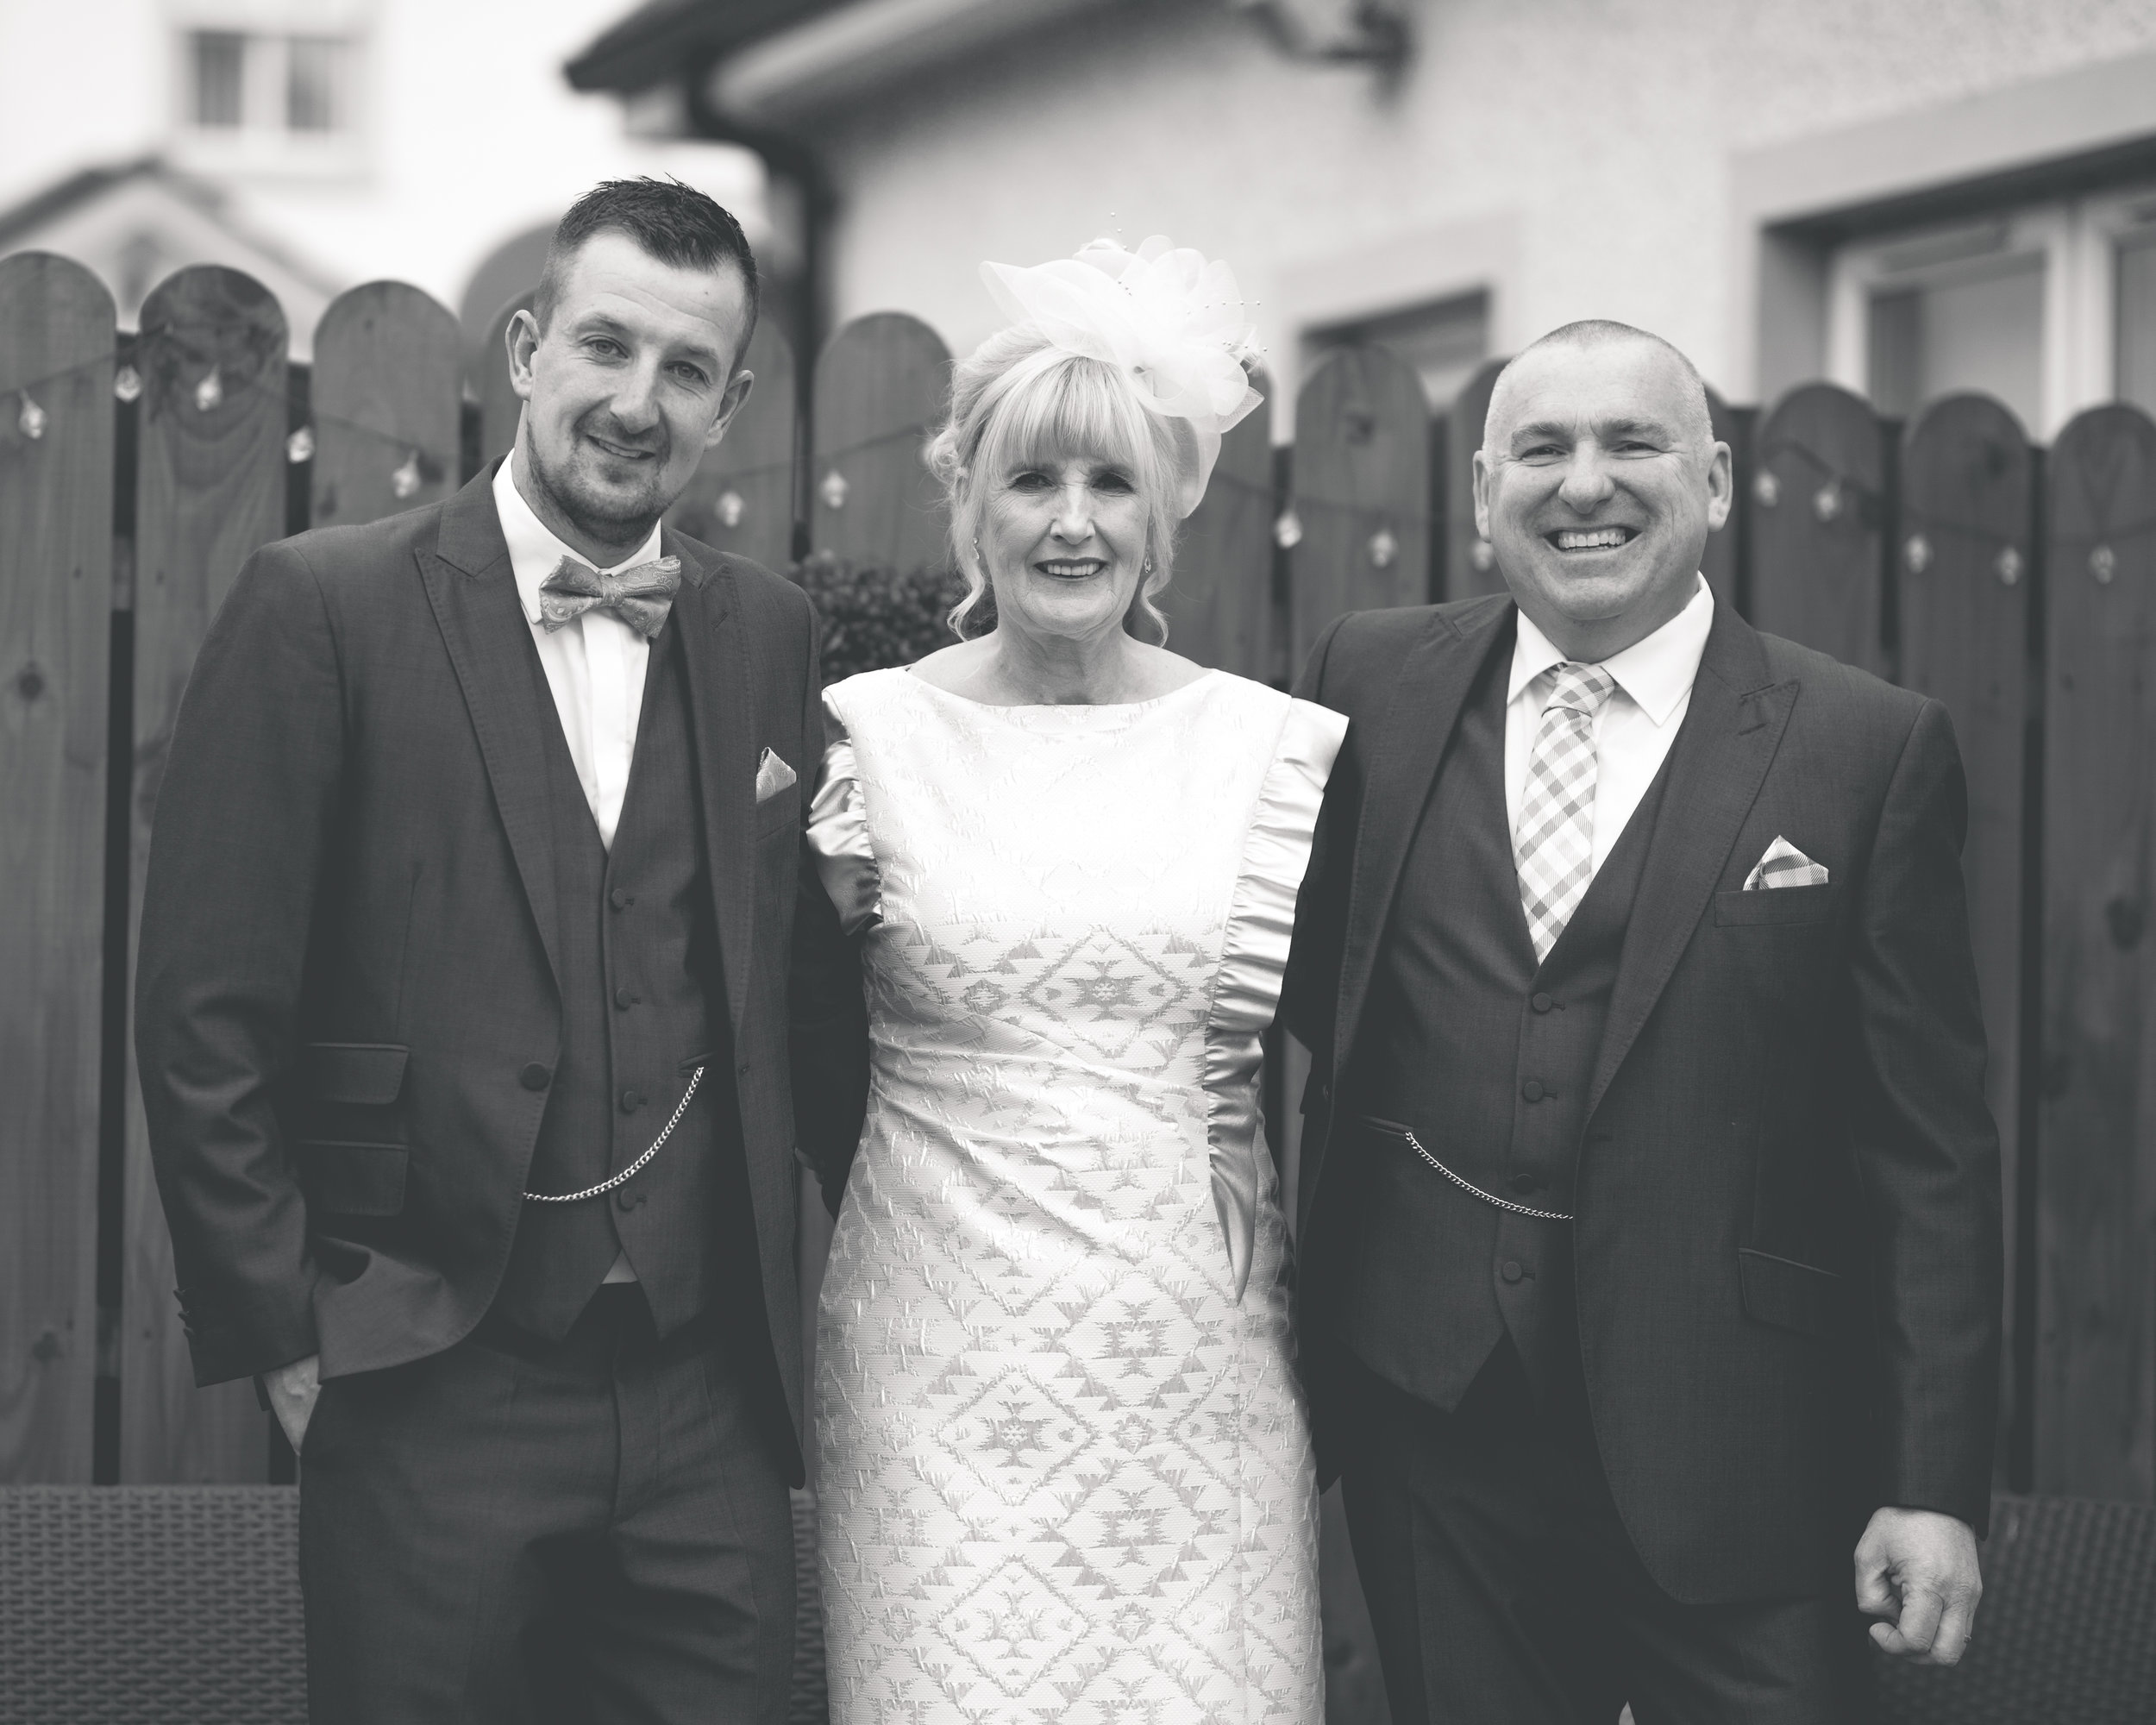 Antoinette & Stephen - Groom & Groomsmen | Brian McEwan Photography | Wedding Photographer Northern Ireland 57.jpg